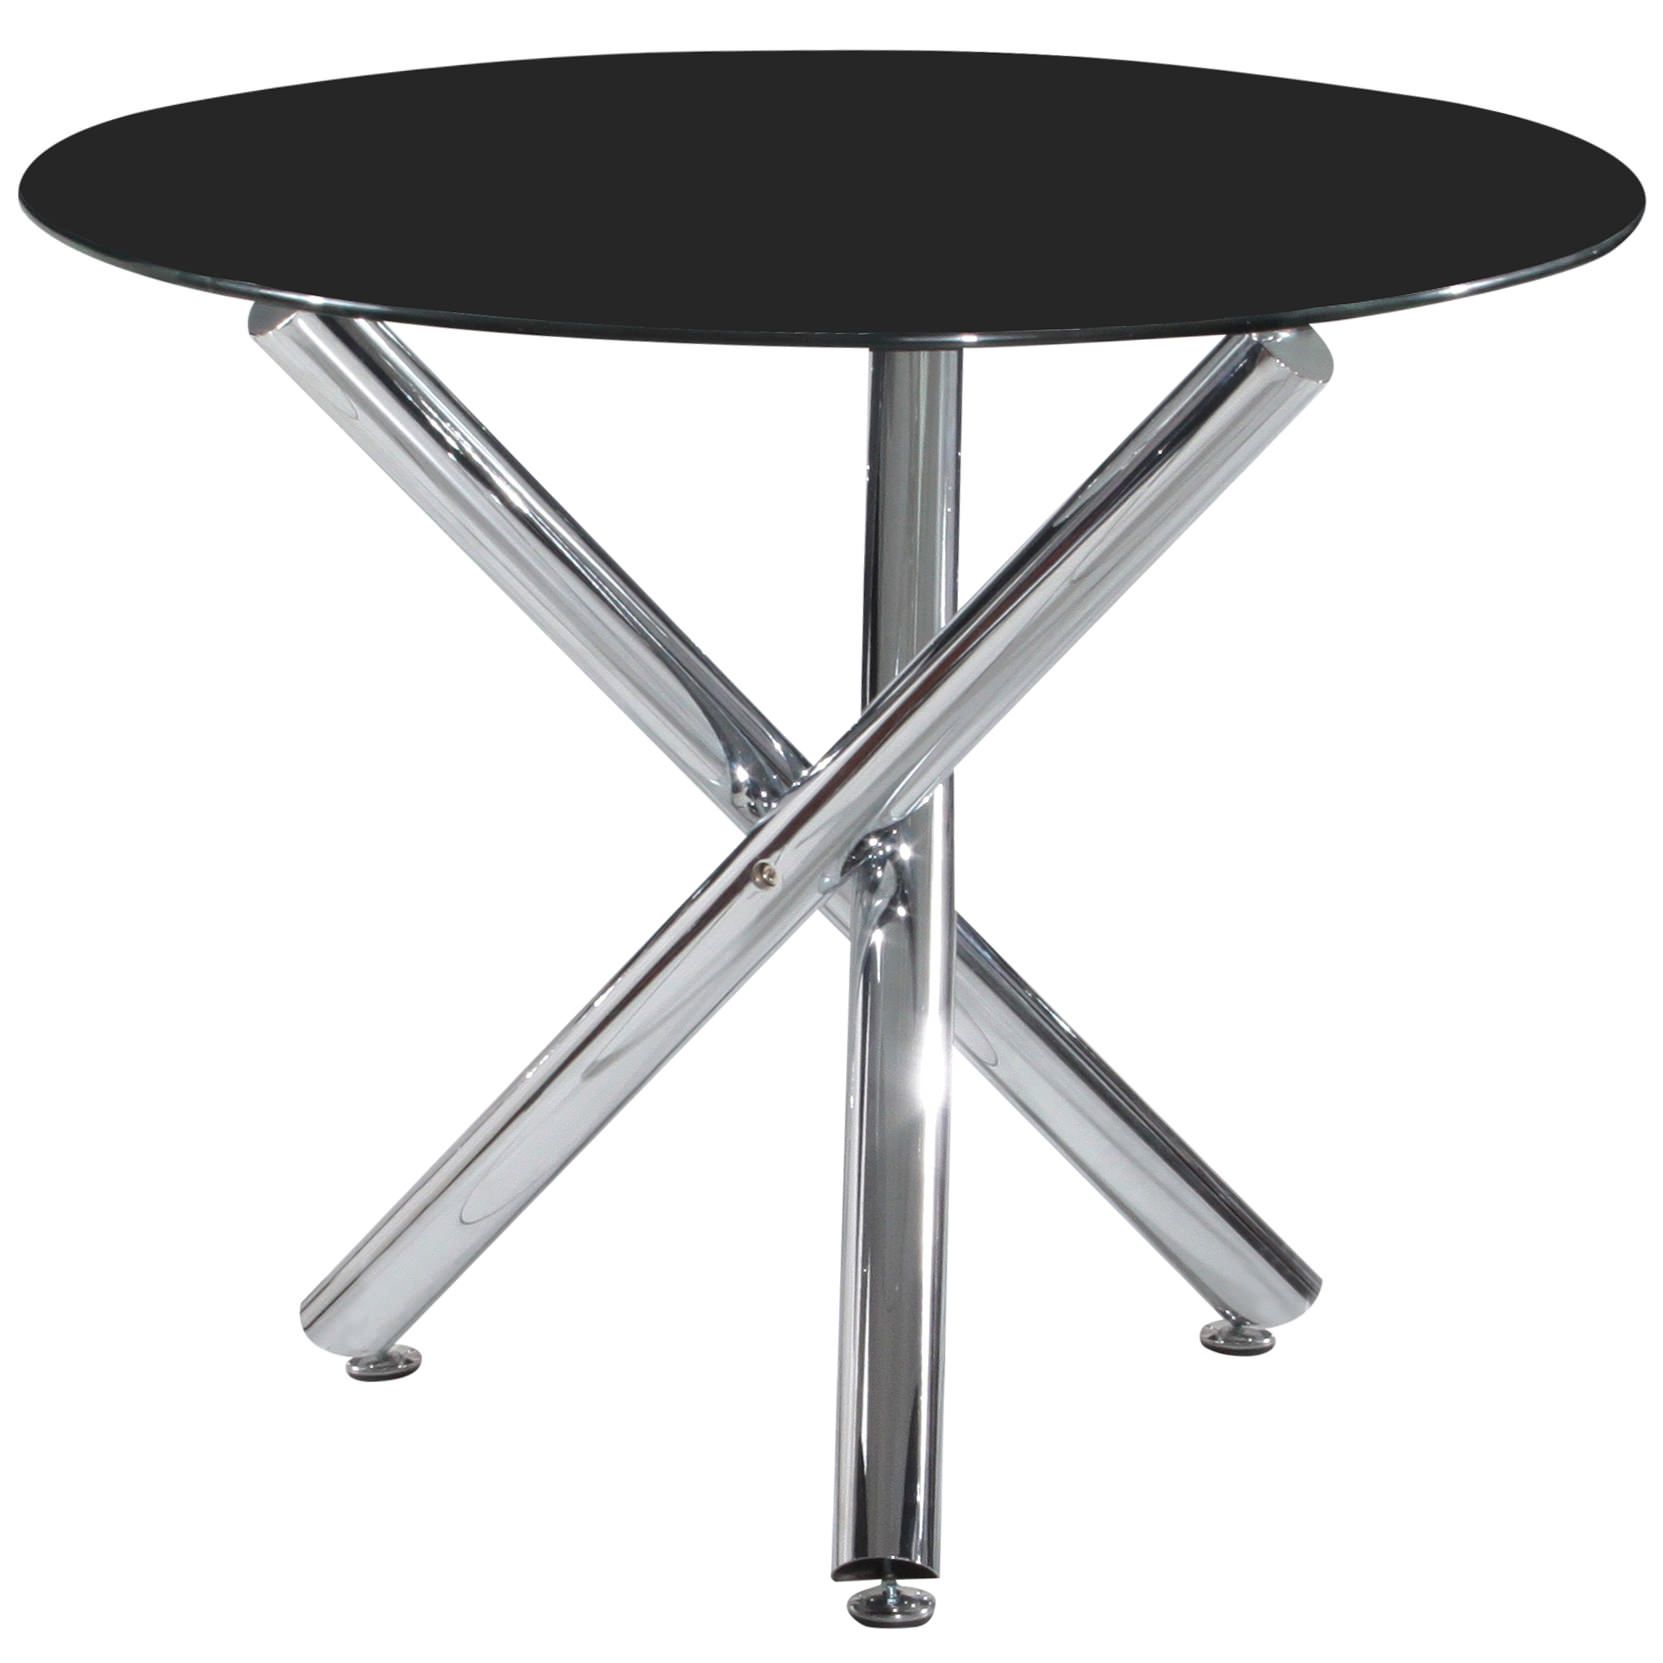 Chrome glass round dining table clear black ebay for Round glass and chrome dining table